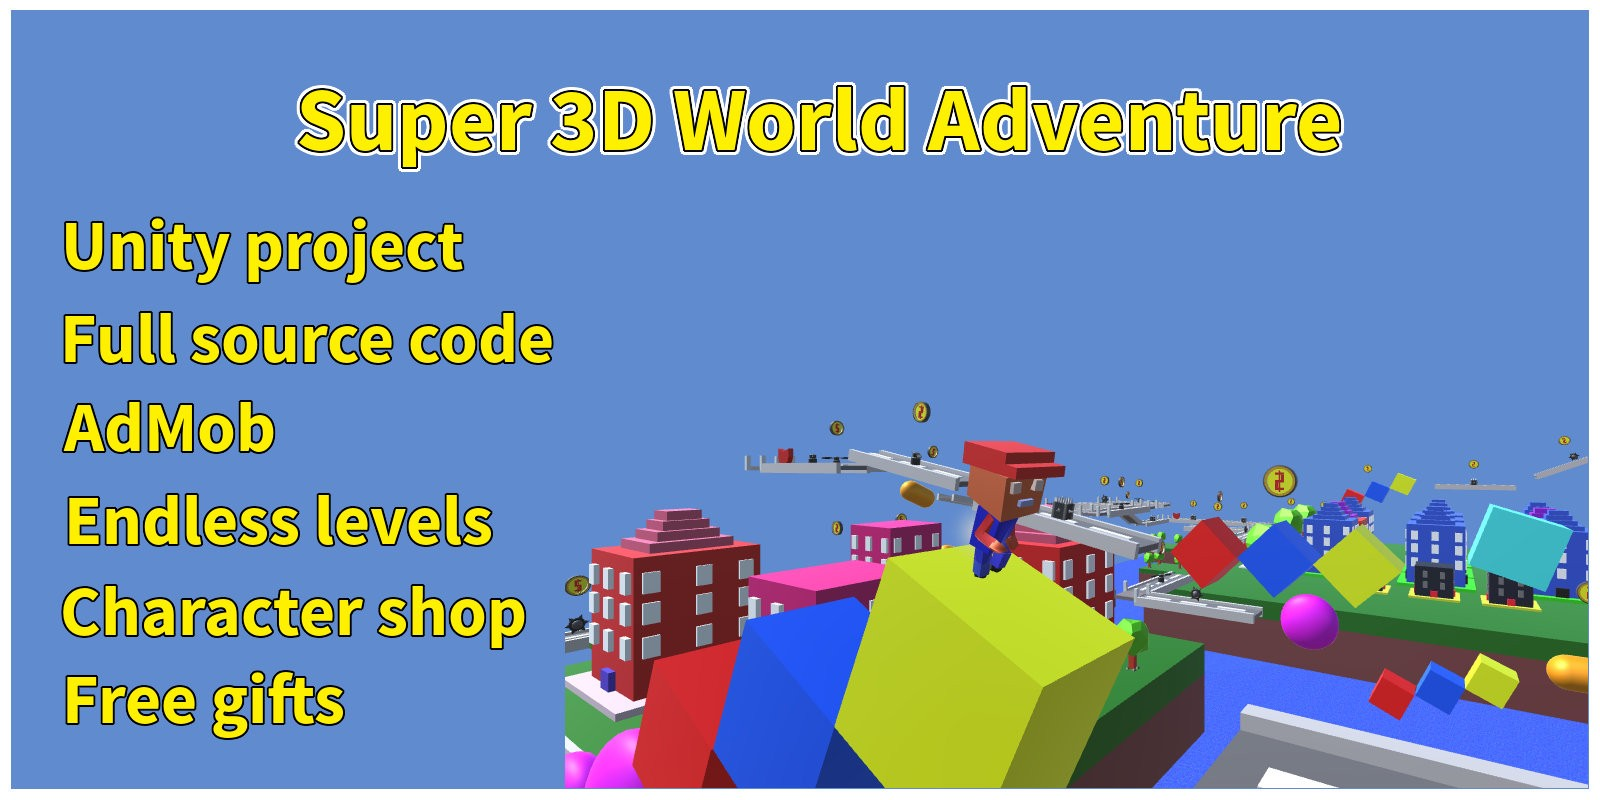 Super 3D World Adventure - Unity